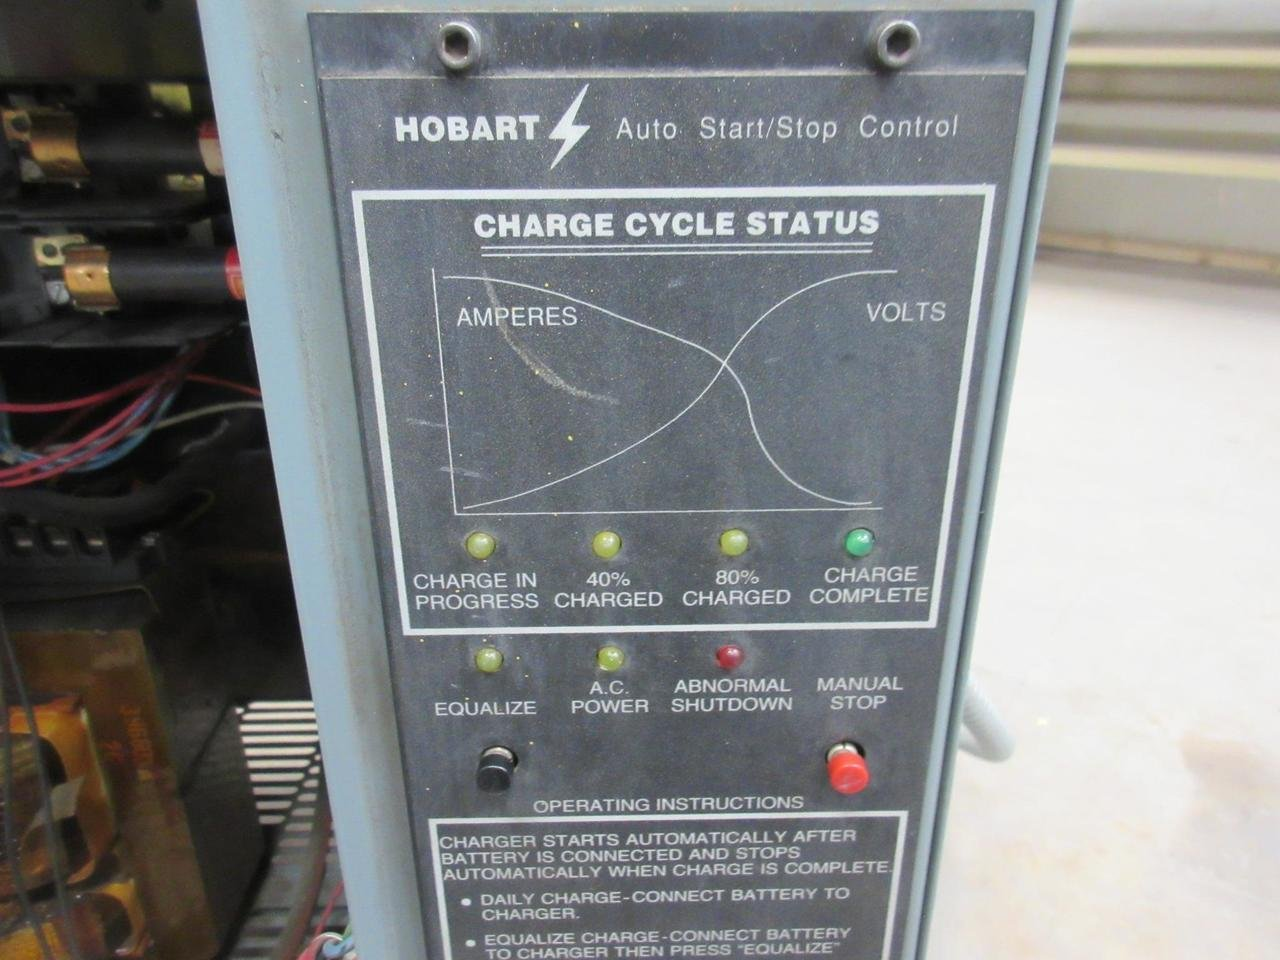 Hobart 540b1 12r 24 Vdc 451 540 Ah Forklift Battery Charger T98524 Wiring Diagram Industrial Scientific